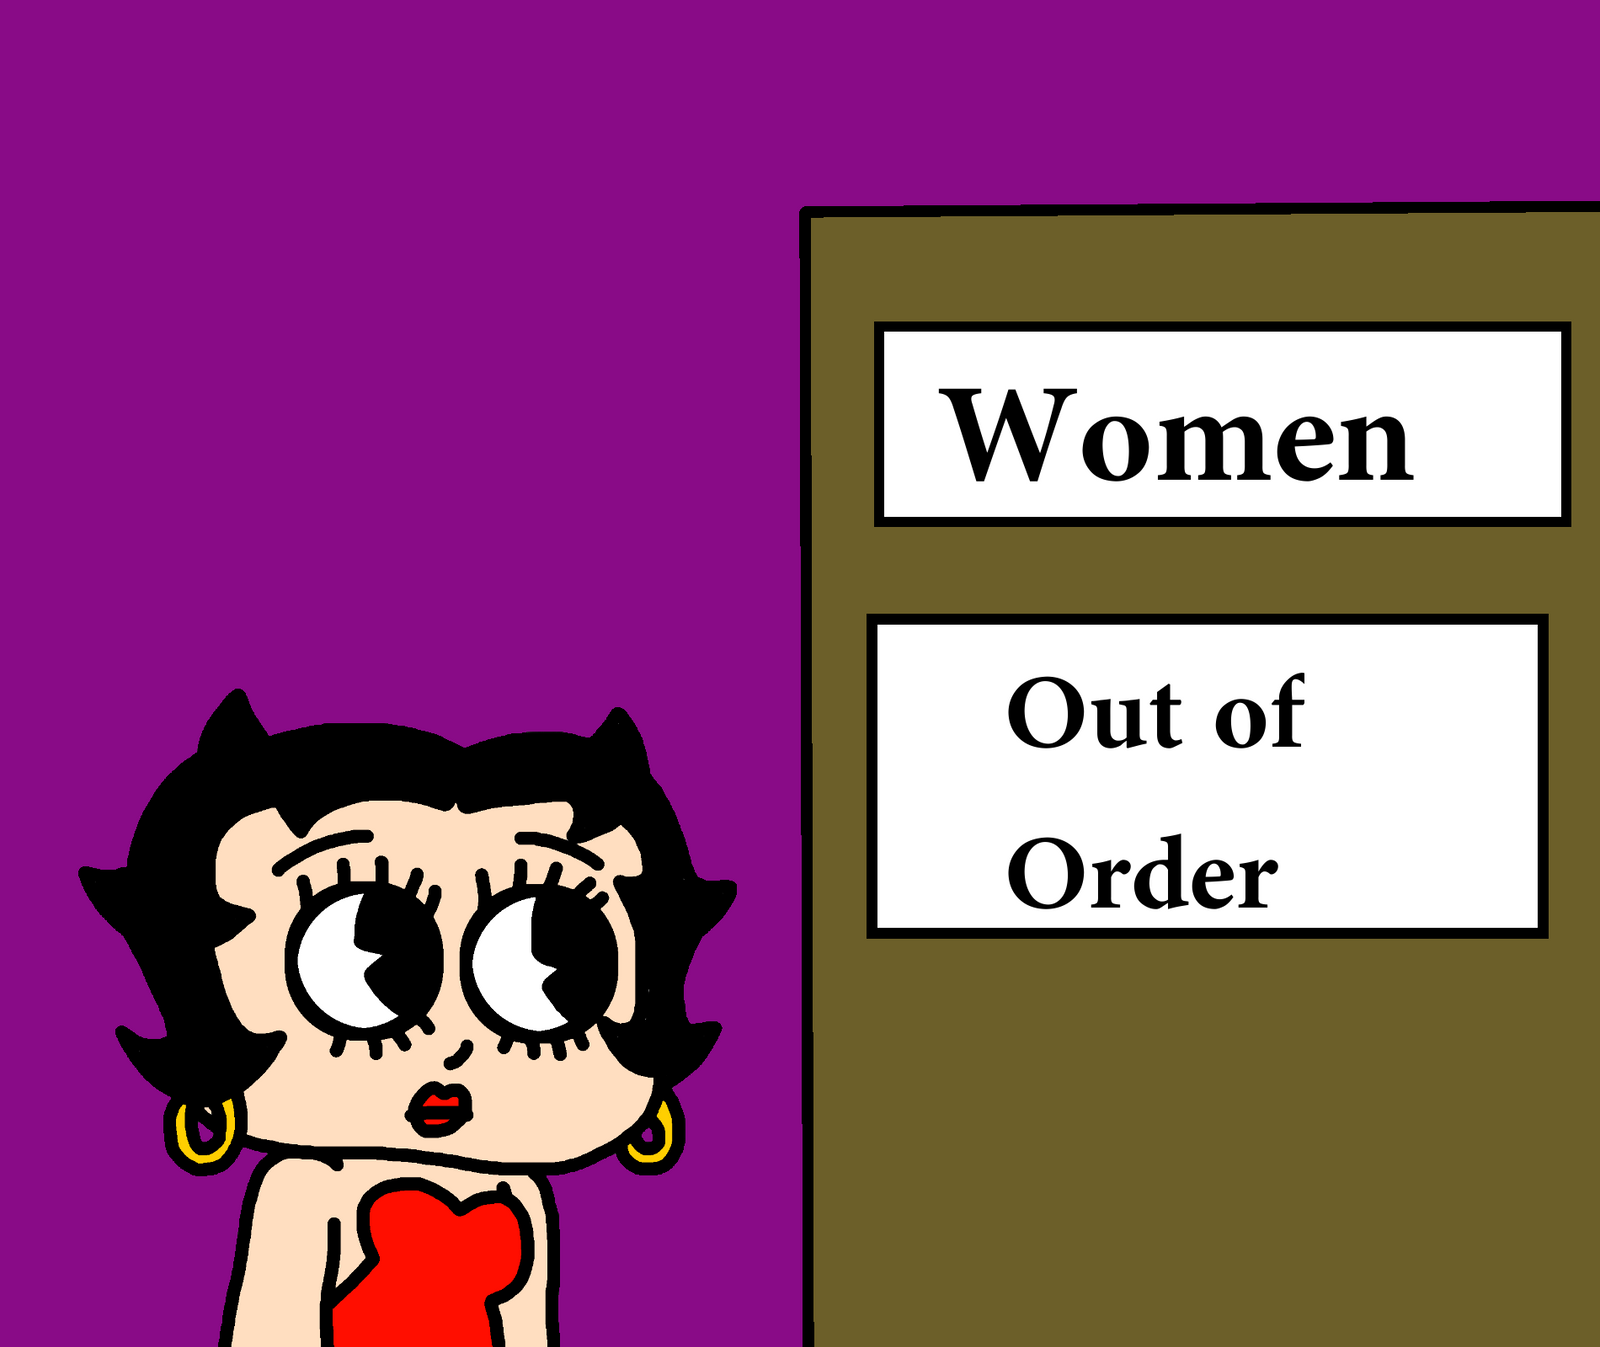 Bathroom Out Of Order betty boop with women's bathroom out of ordermarcospower1996